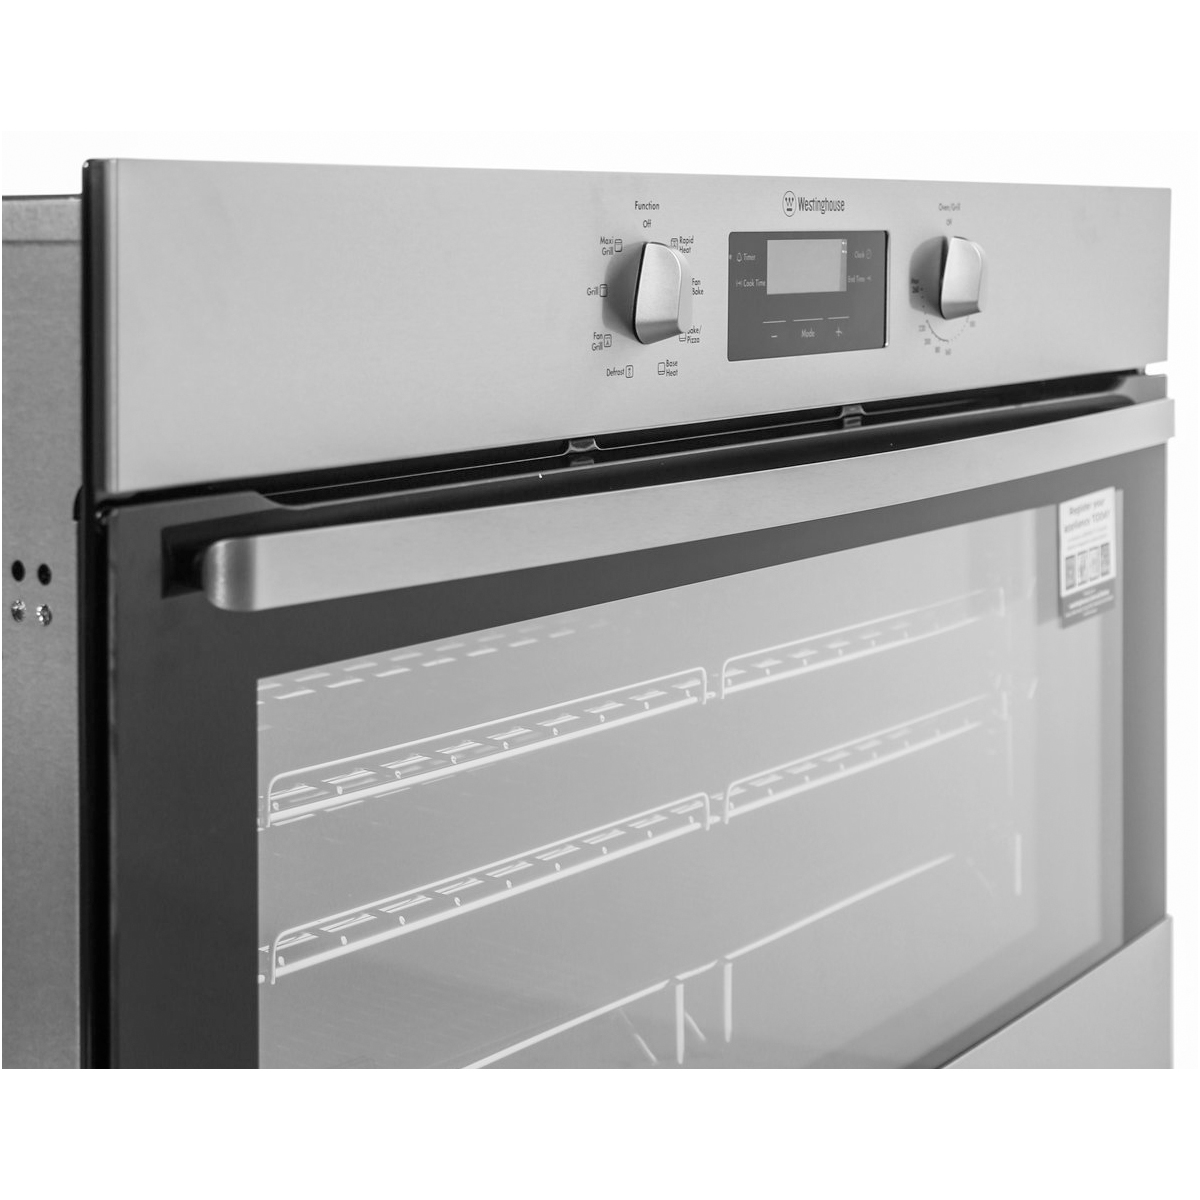 Westinghouse WVE914SB 90cm Electric Built-In Oven 72966